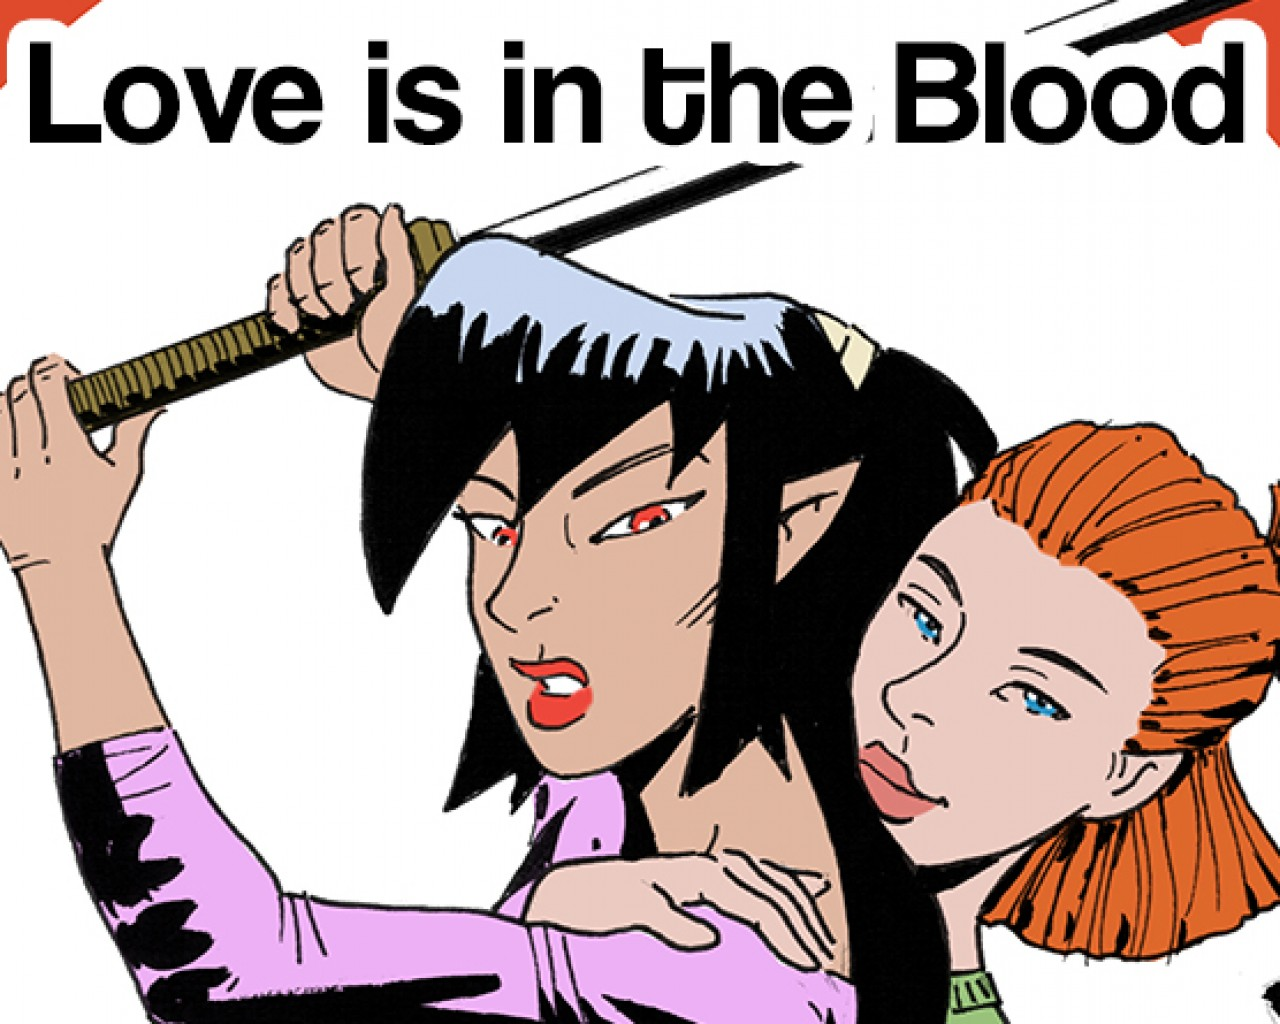 Poster Image for Love is in the Blood